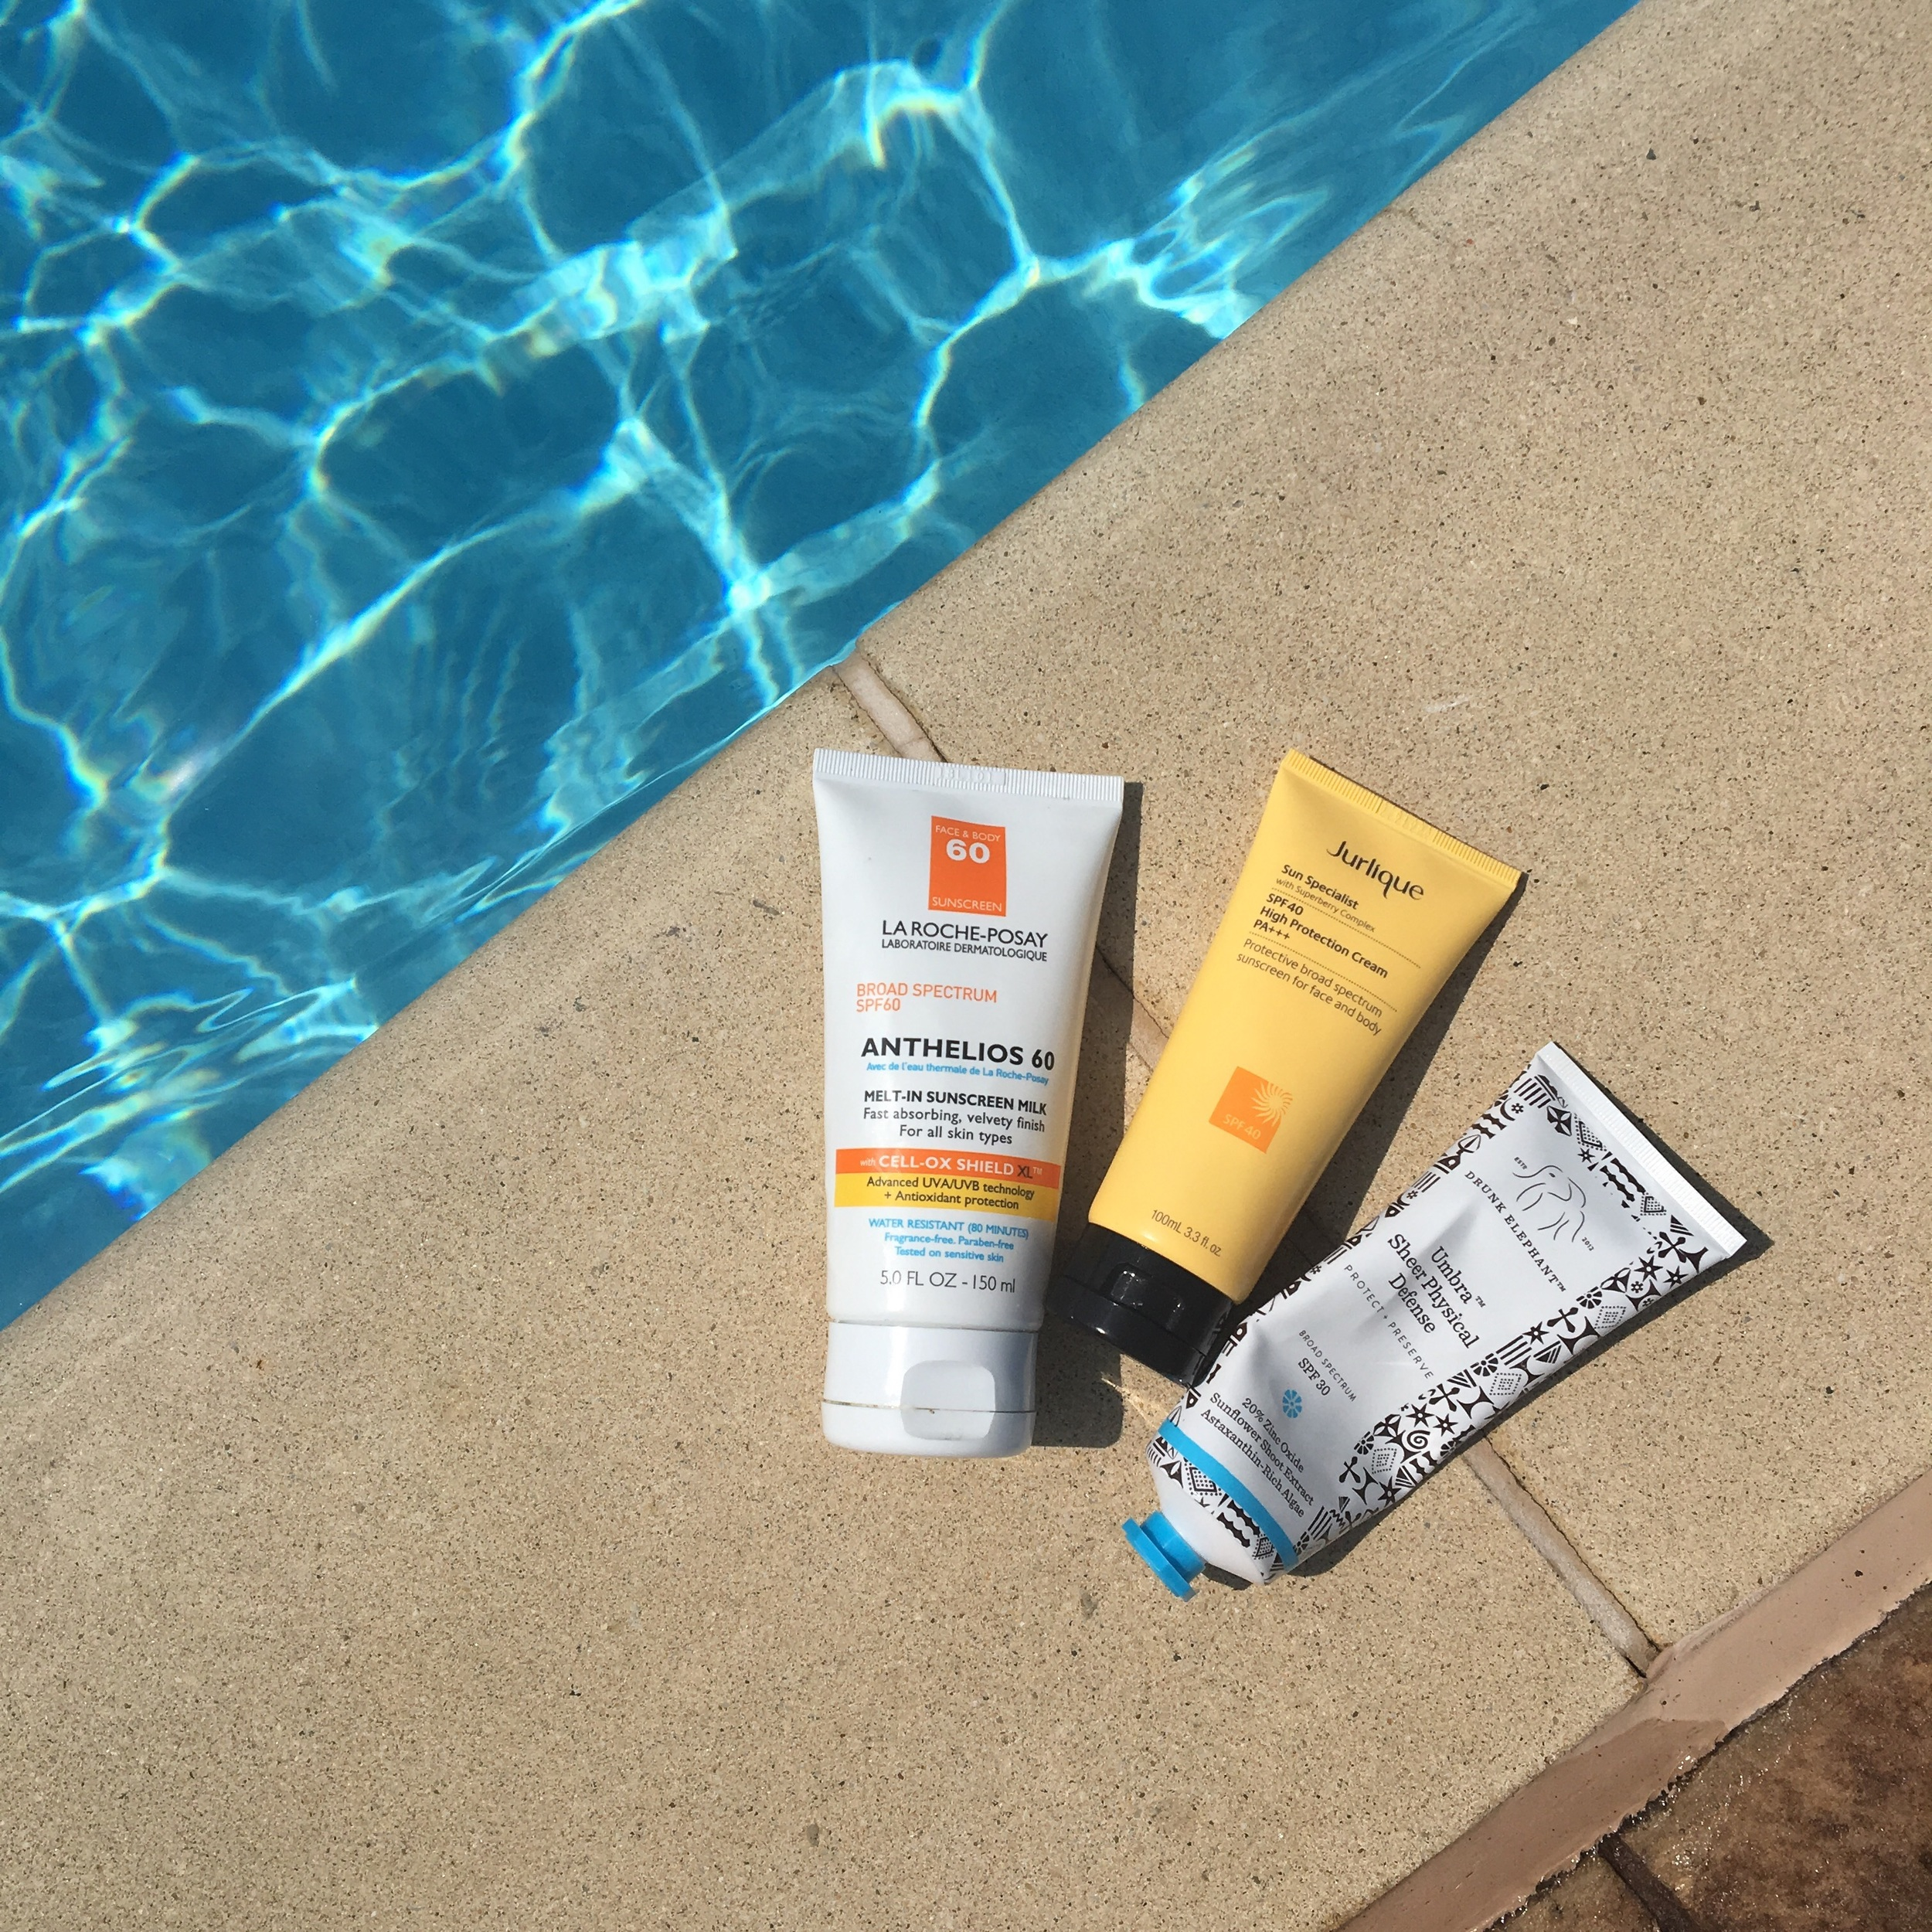 La Roche Posay Anthelios Melt-In Sunscreen Milk, Jurlique Sun Specialist SPF 40, Drunk Elephant Umbra Sheer Physical Defense